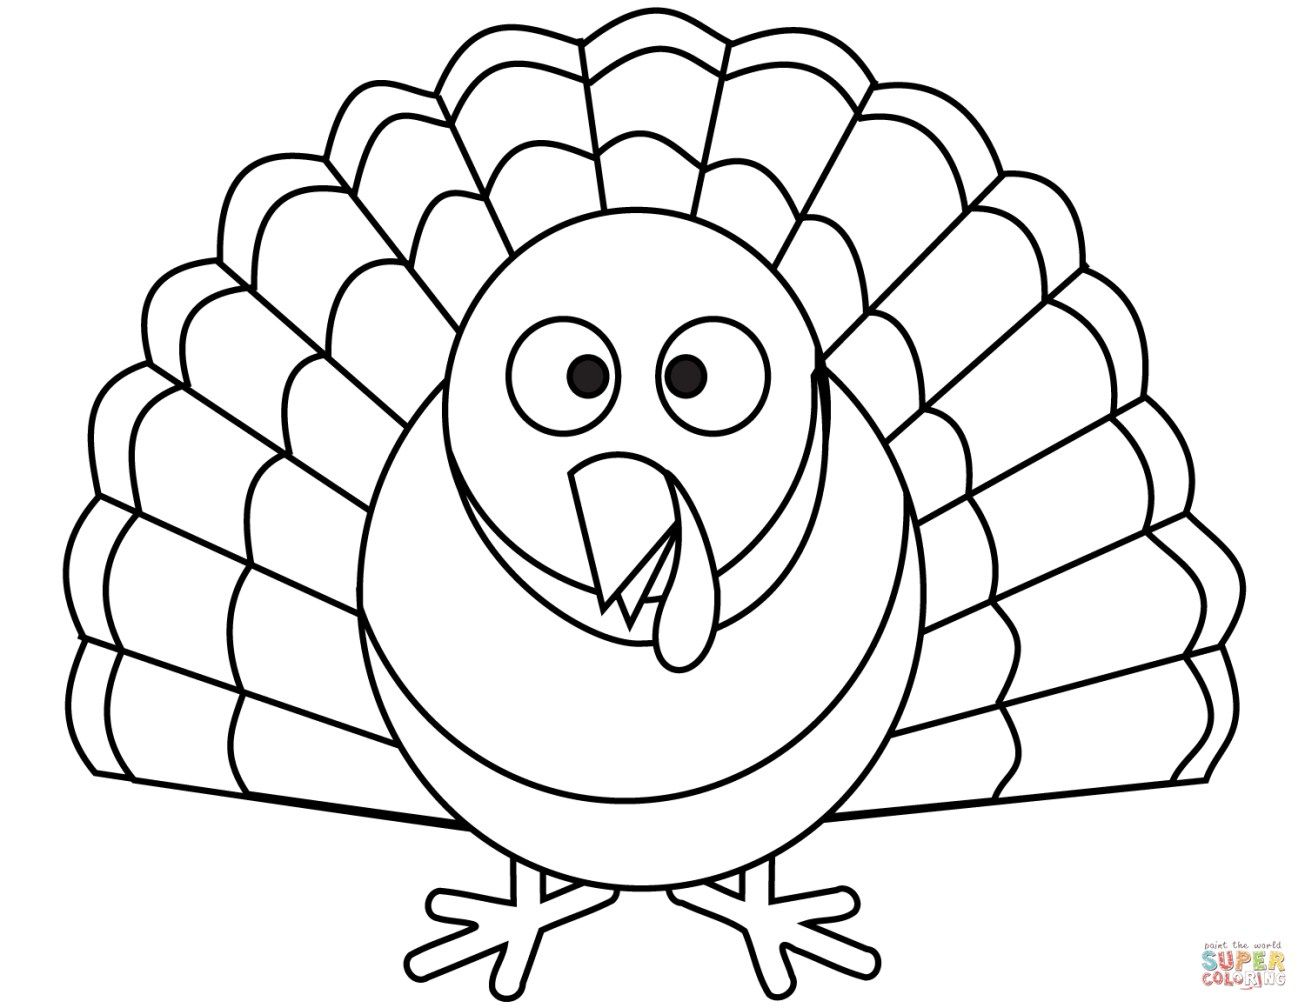 22 Marvelous Picture Of Turkey Coloring Pages Turkey Coloring